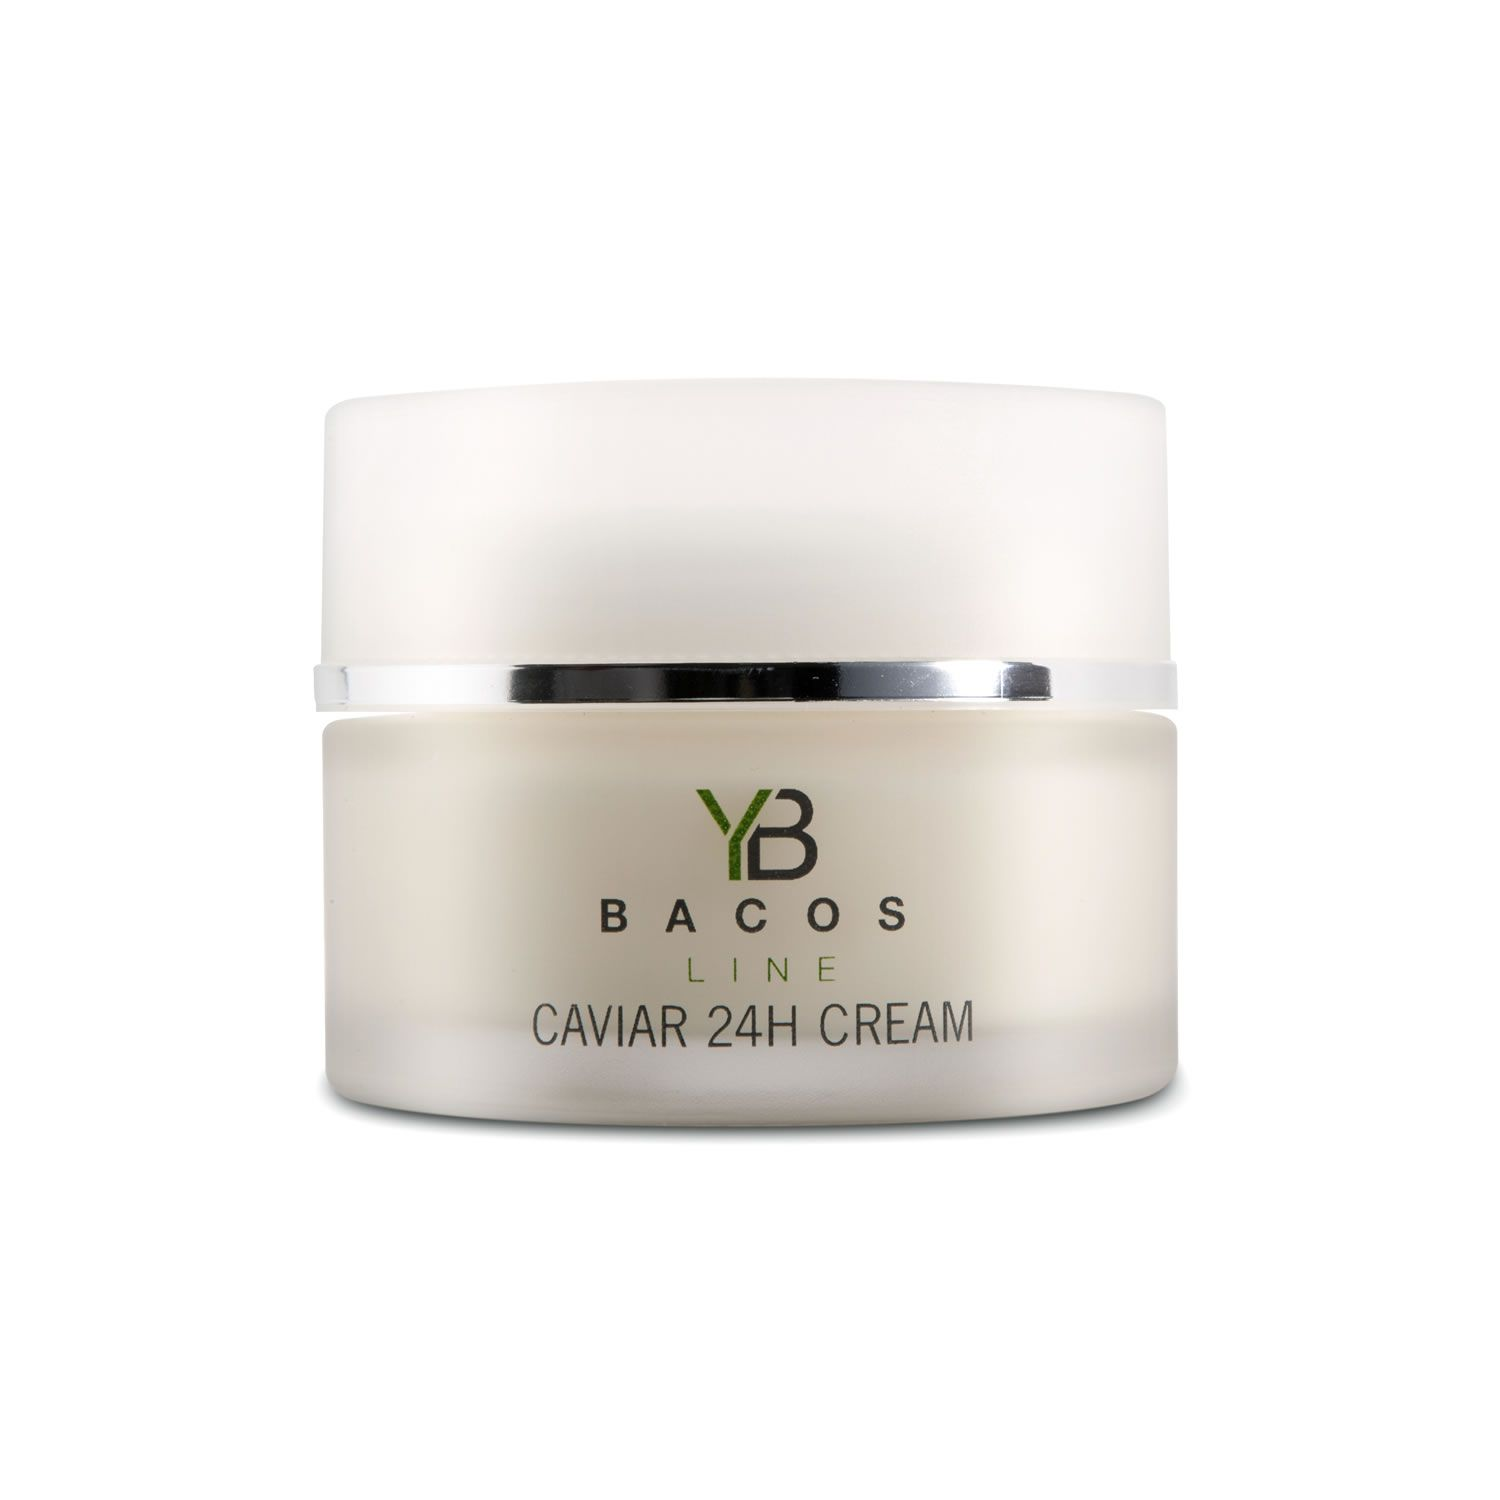 YB BACOS LINE CAVIAR 24 H CREAM - 50 ml